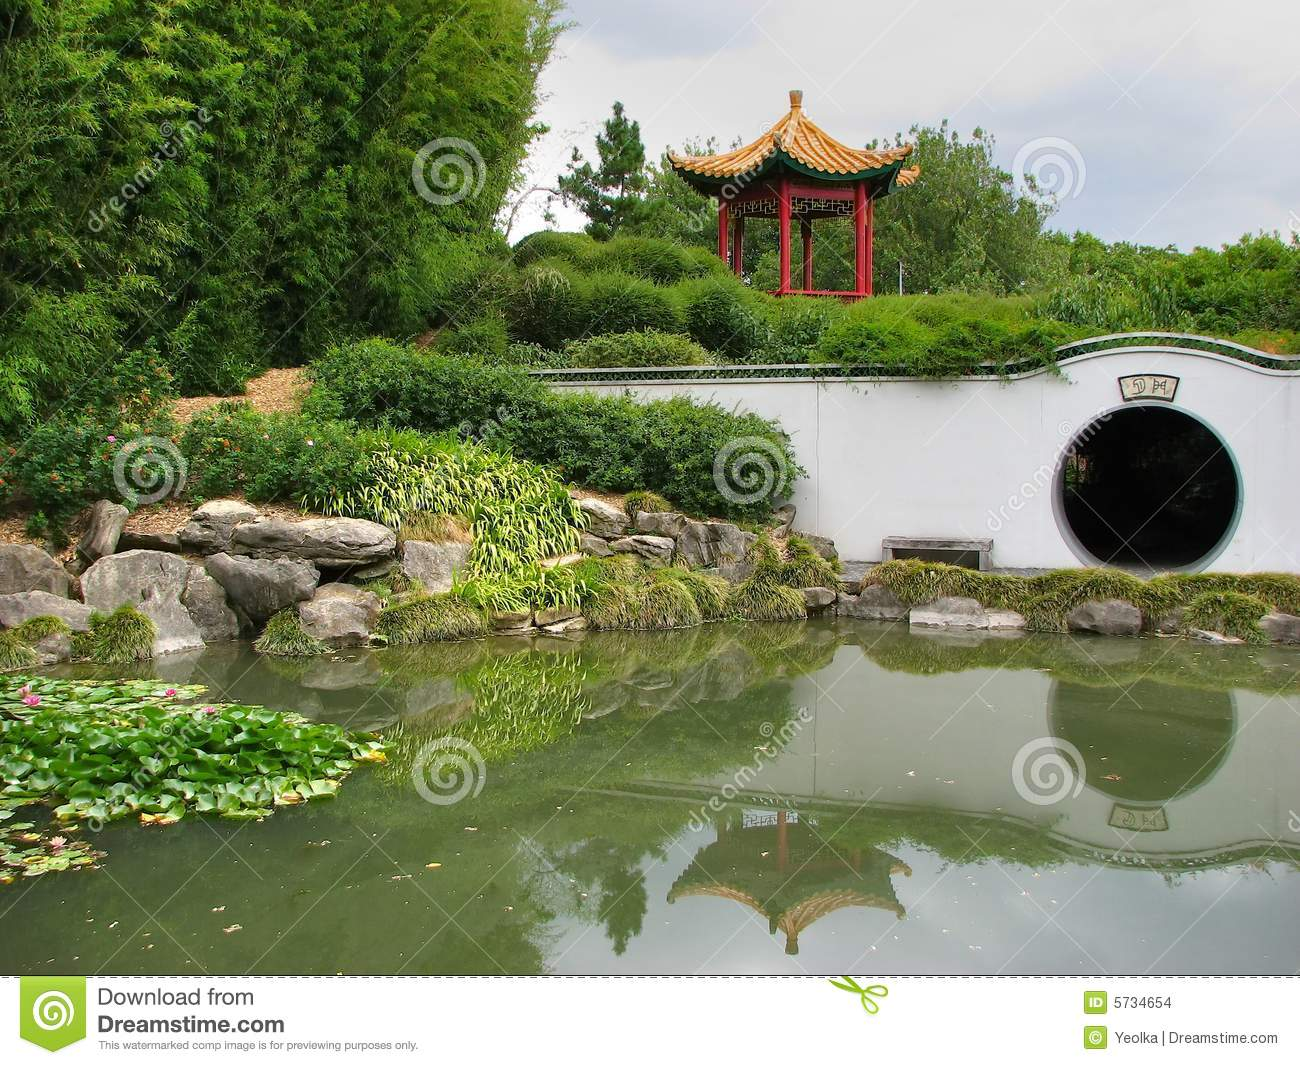 Download Garden Design Stock Photo. Image Of Chinese, Bridge, Garden    5734654